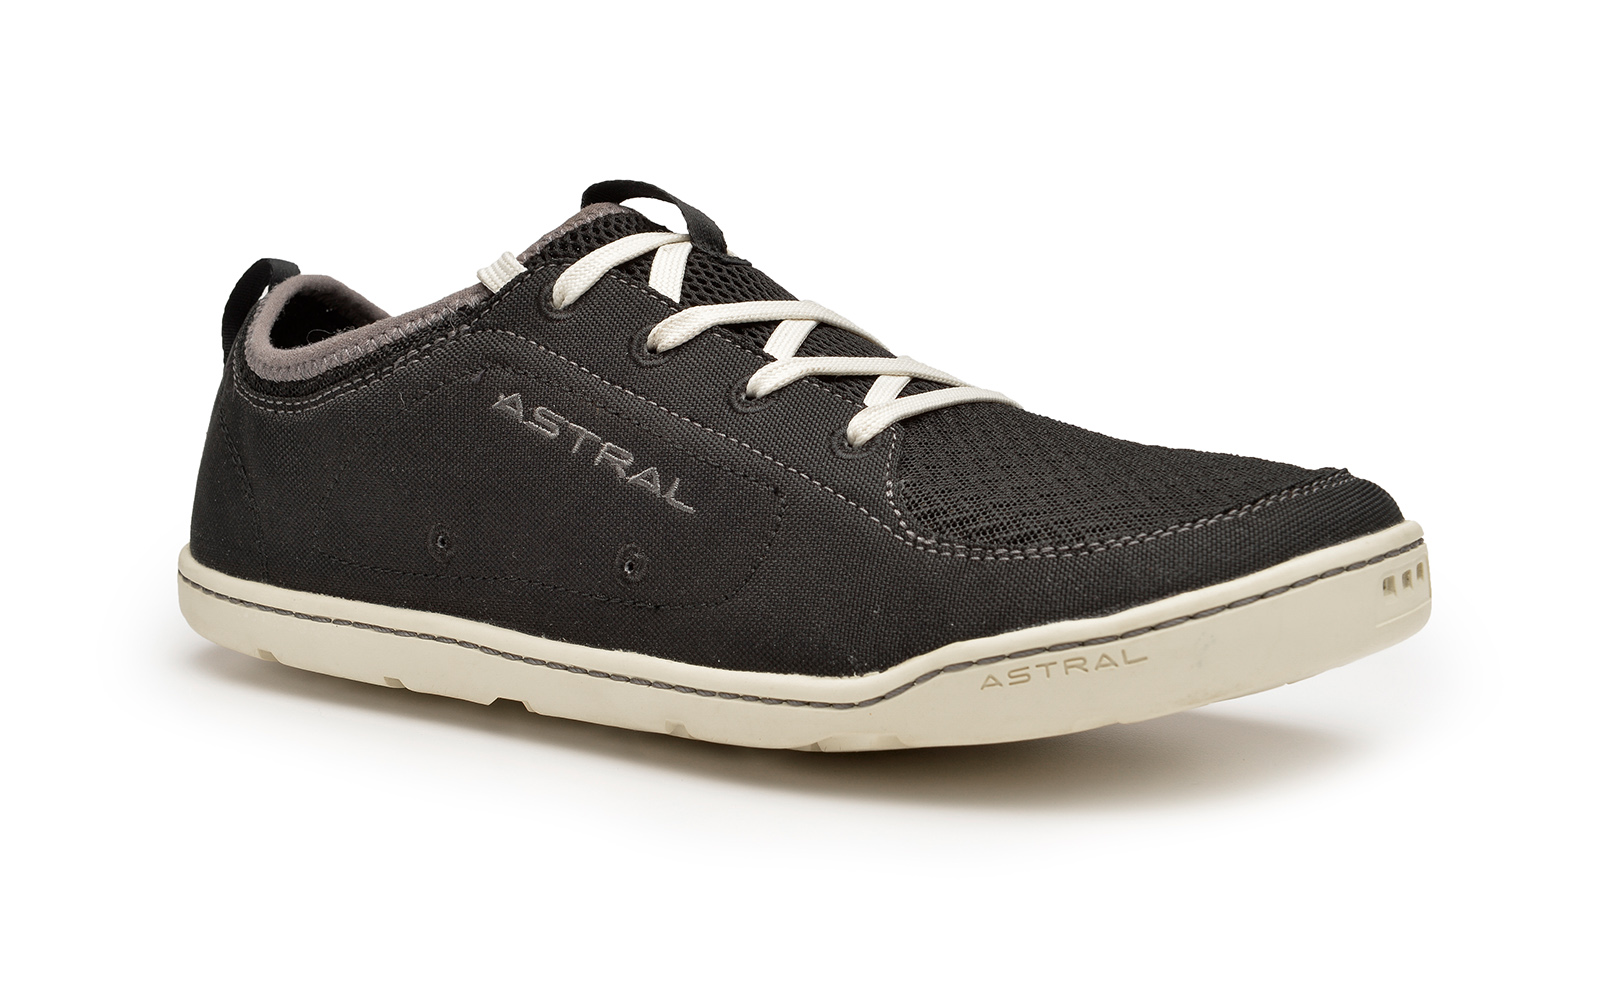 Astral Loyak Water Shoes Men S